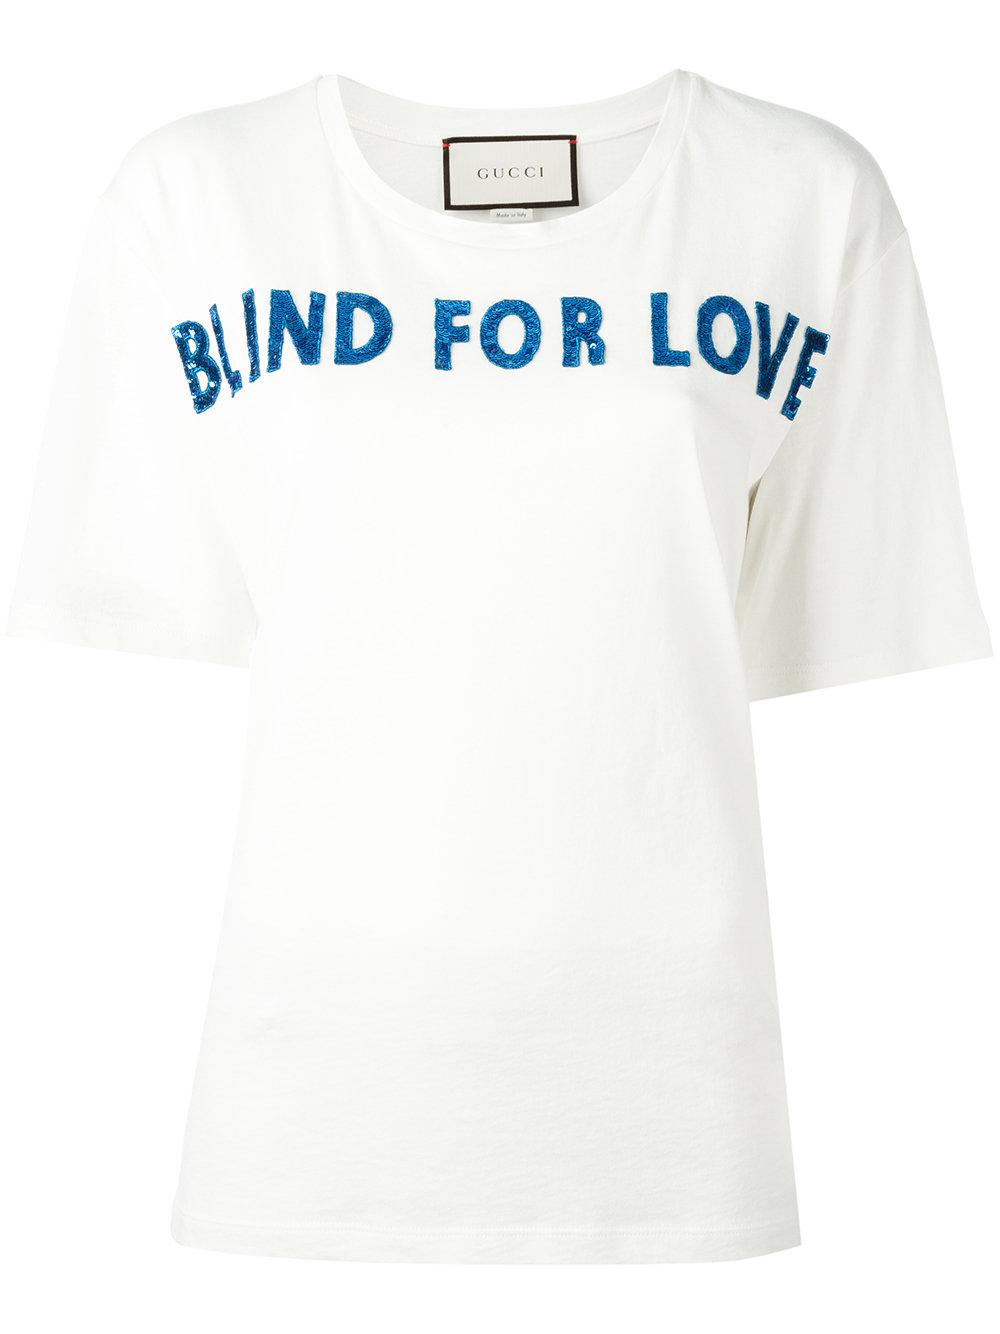 8144a5a66 Gucci Blind For Love T-shirt in White - Lyst